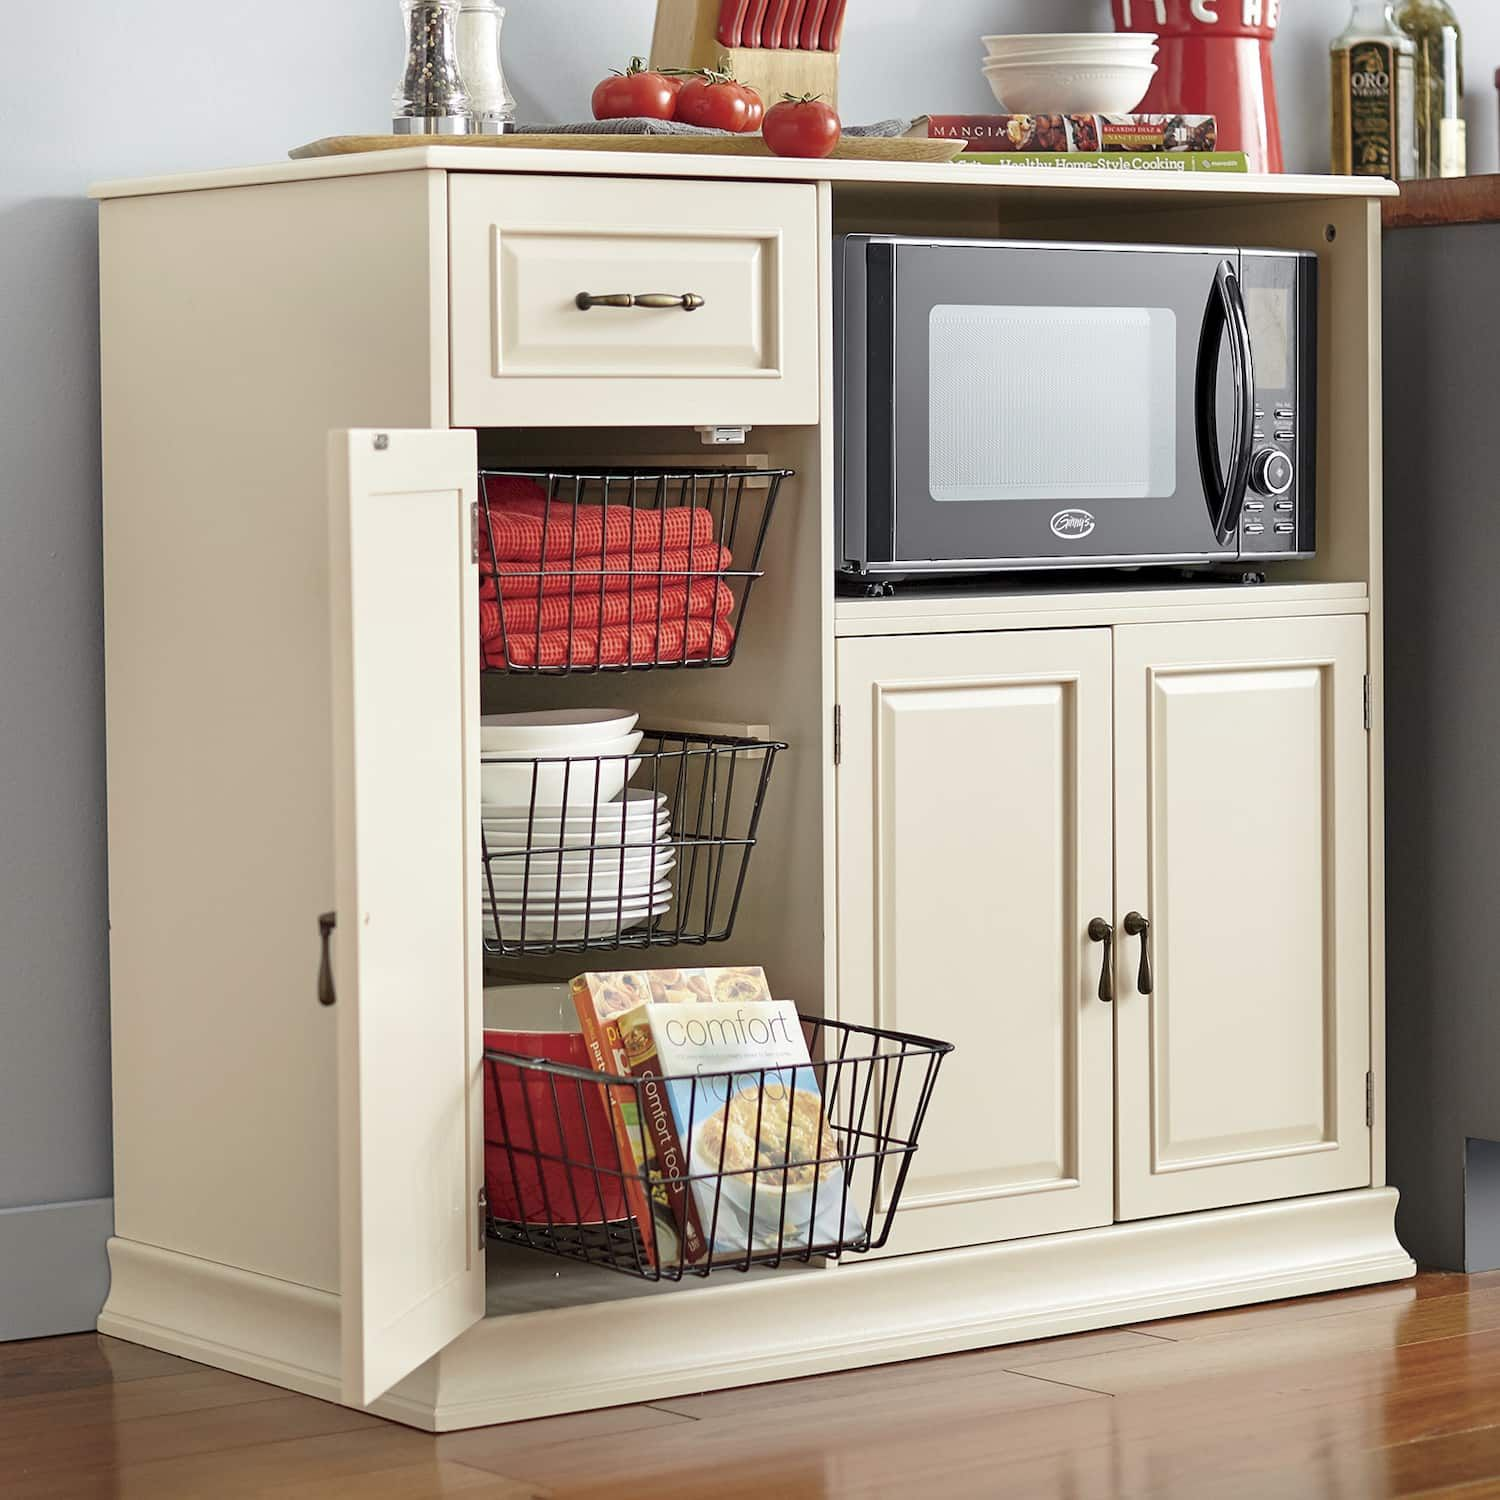 Bayfield Counter Height Microwave Cabinet Ginny S Kitchen Furniture Storage Microwave Cabinet Small Kitchen Storage